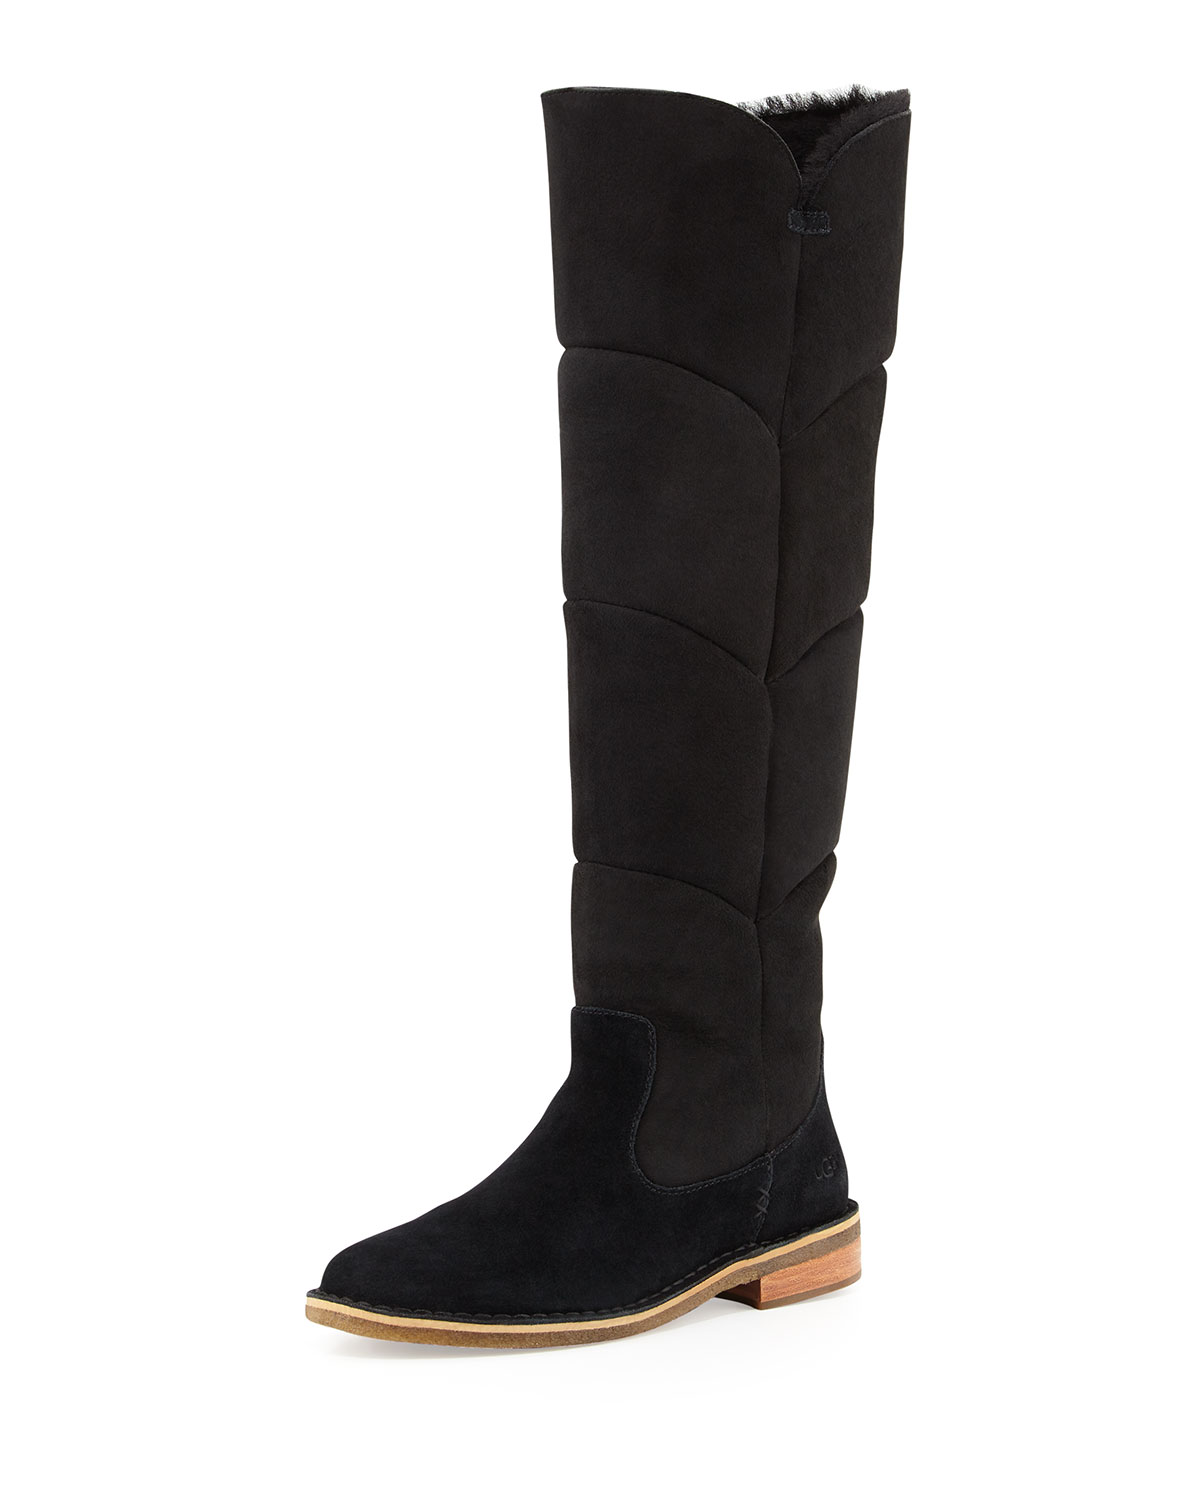 59b8e29b4af Samantha Quilted Tall Boot, Black